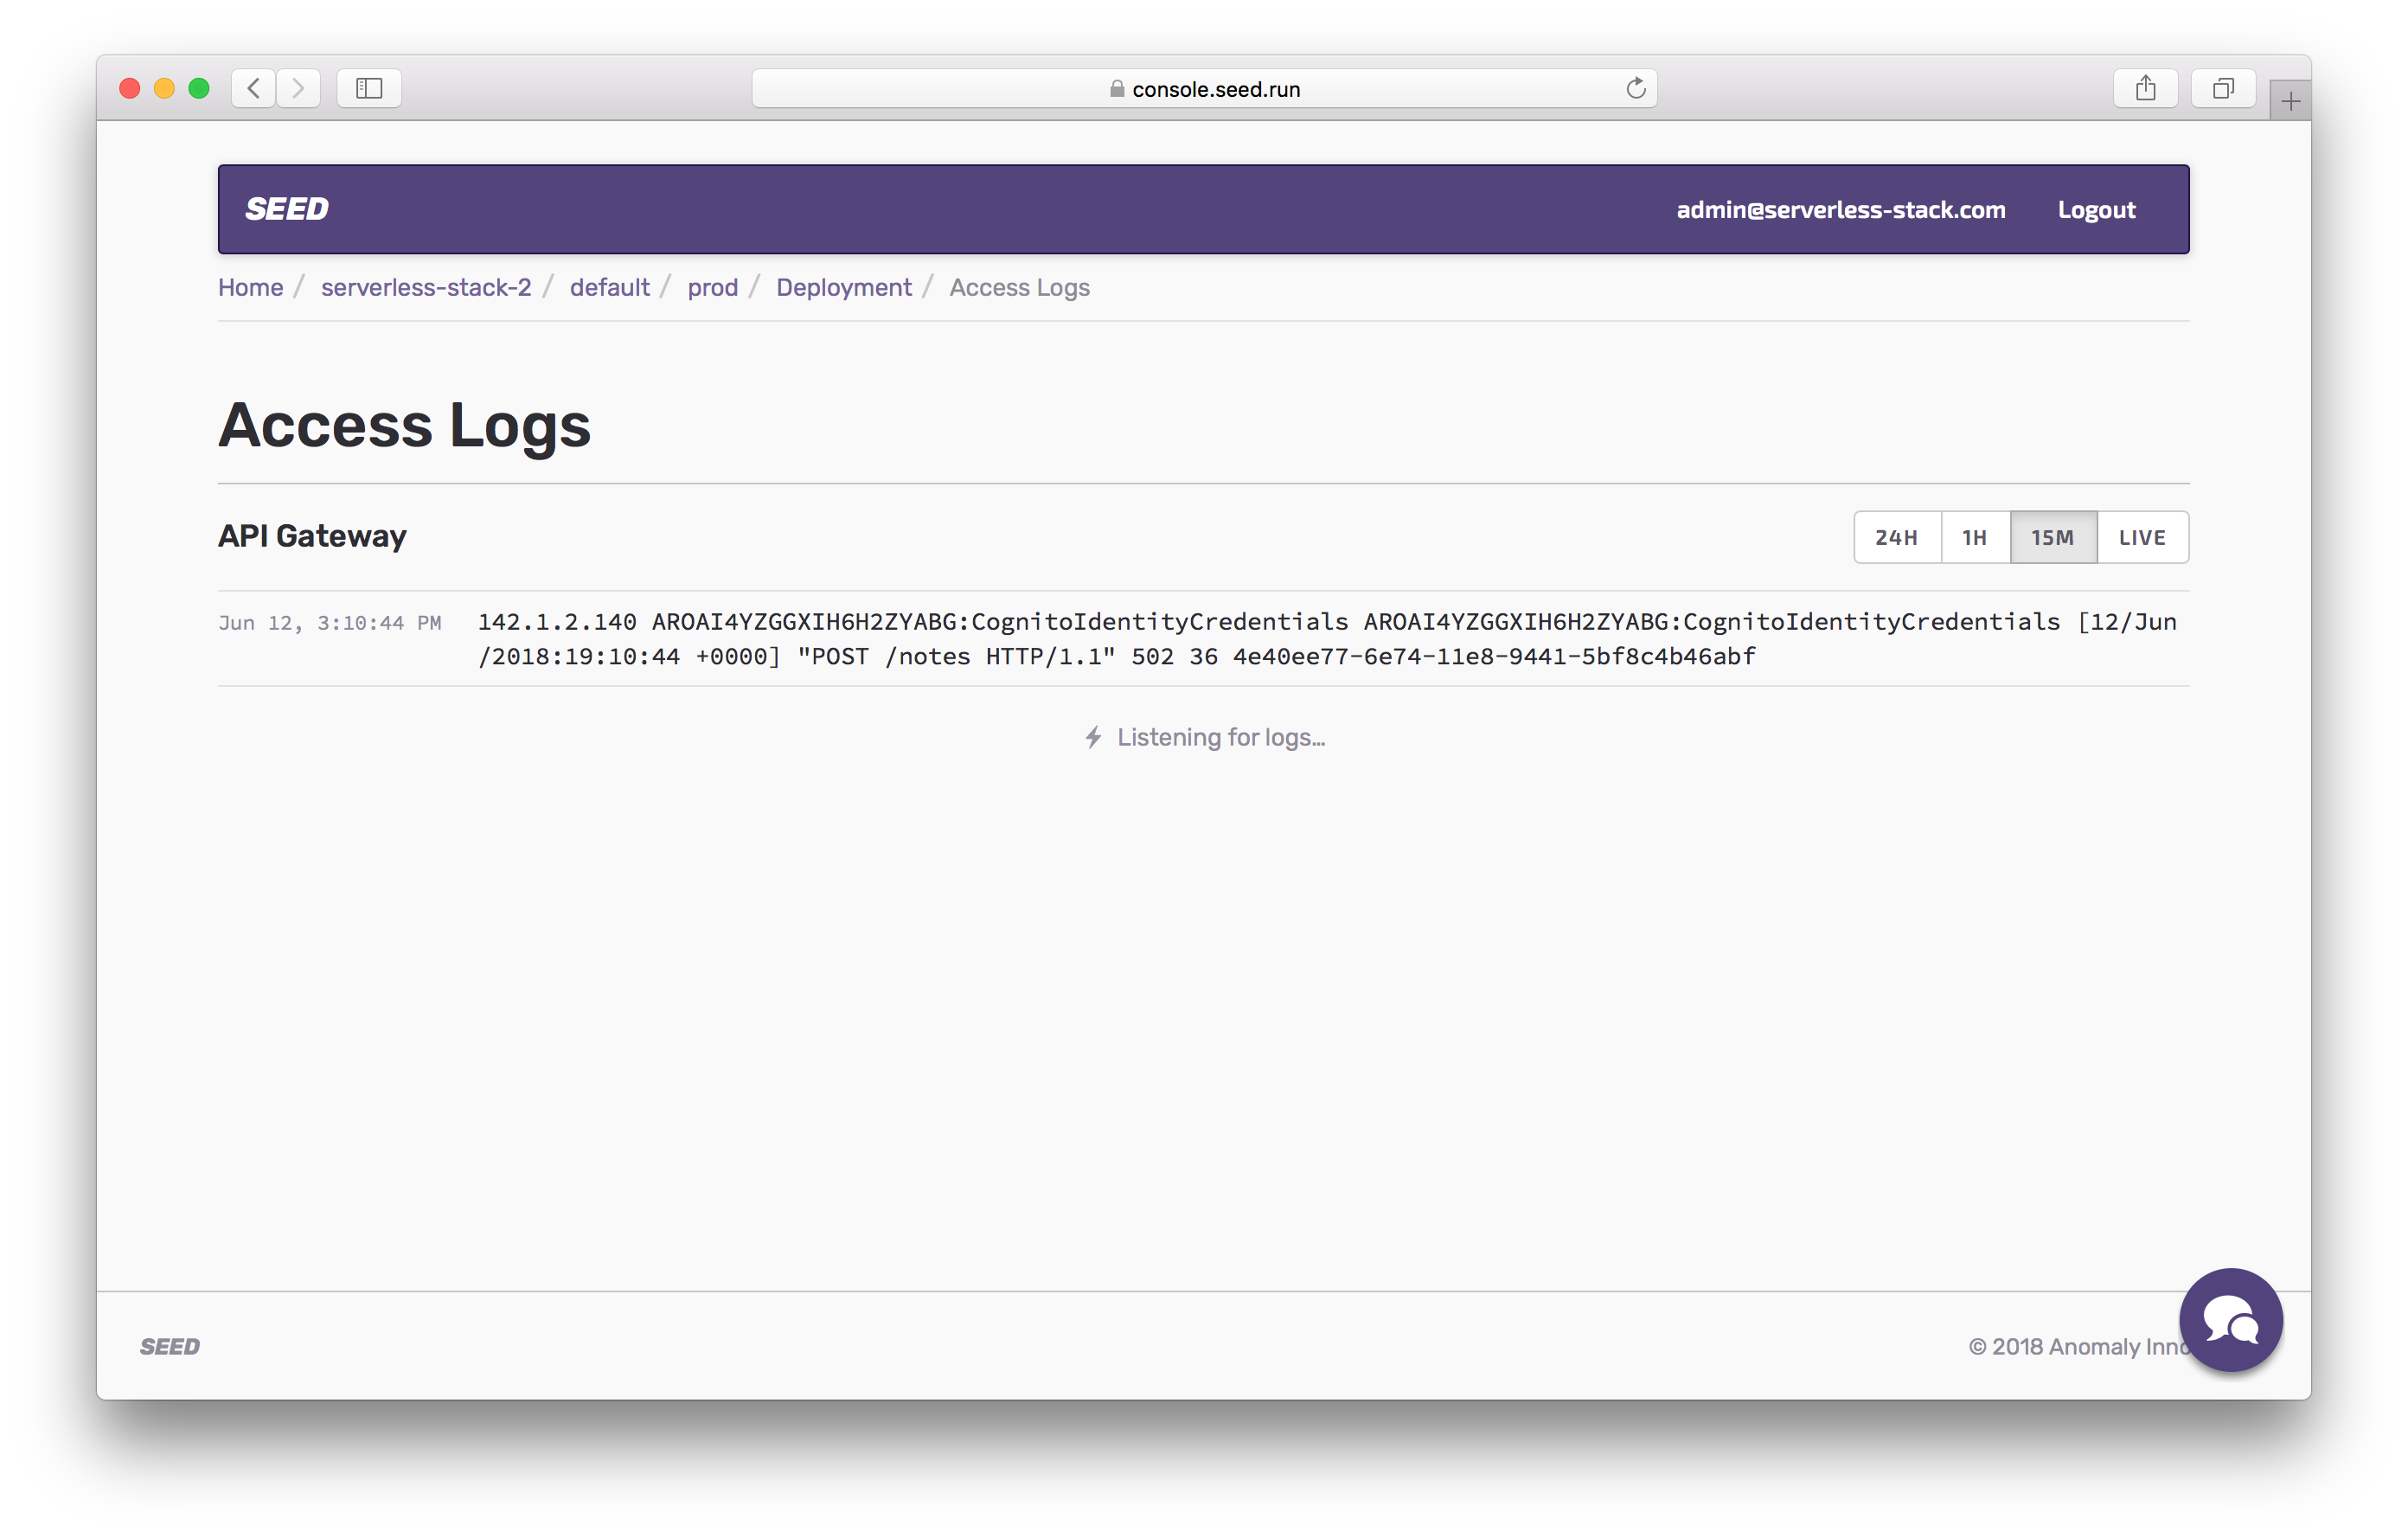 View access logs in prod screenshot